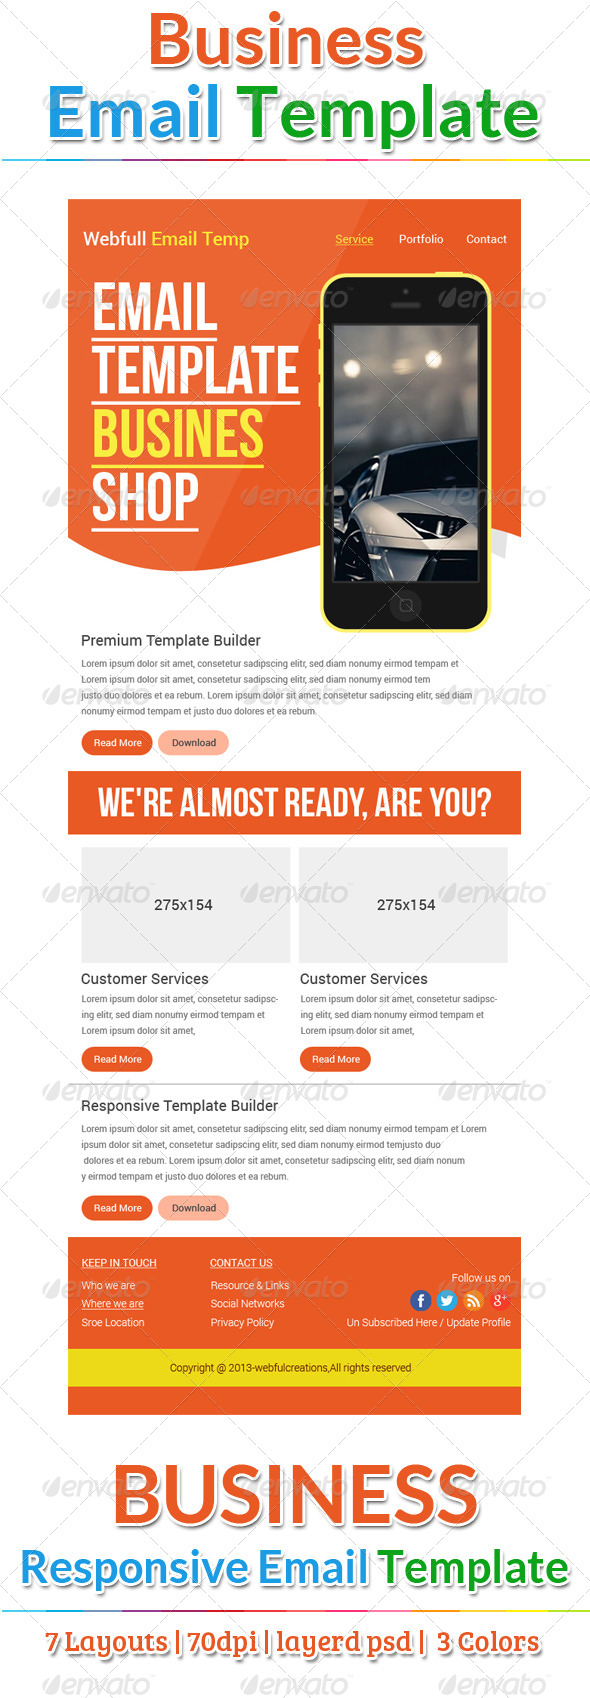 GraphicRiver Business Email Template 6416985